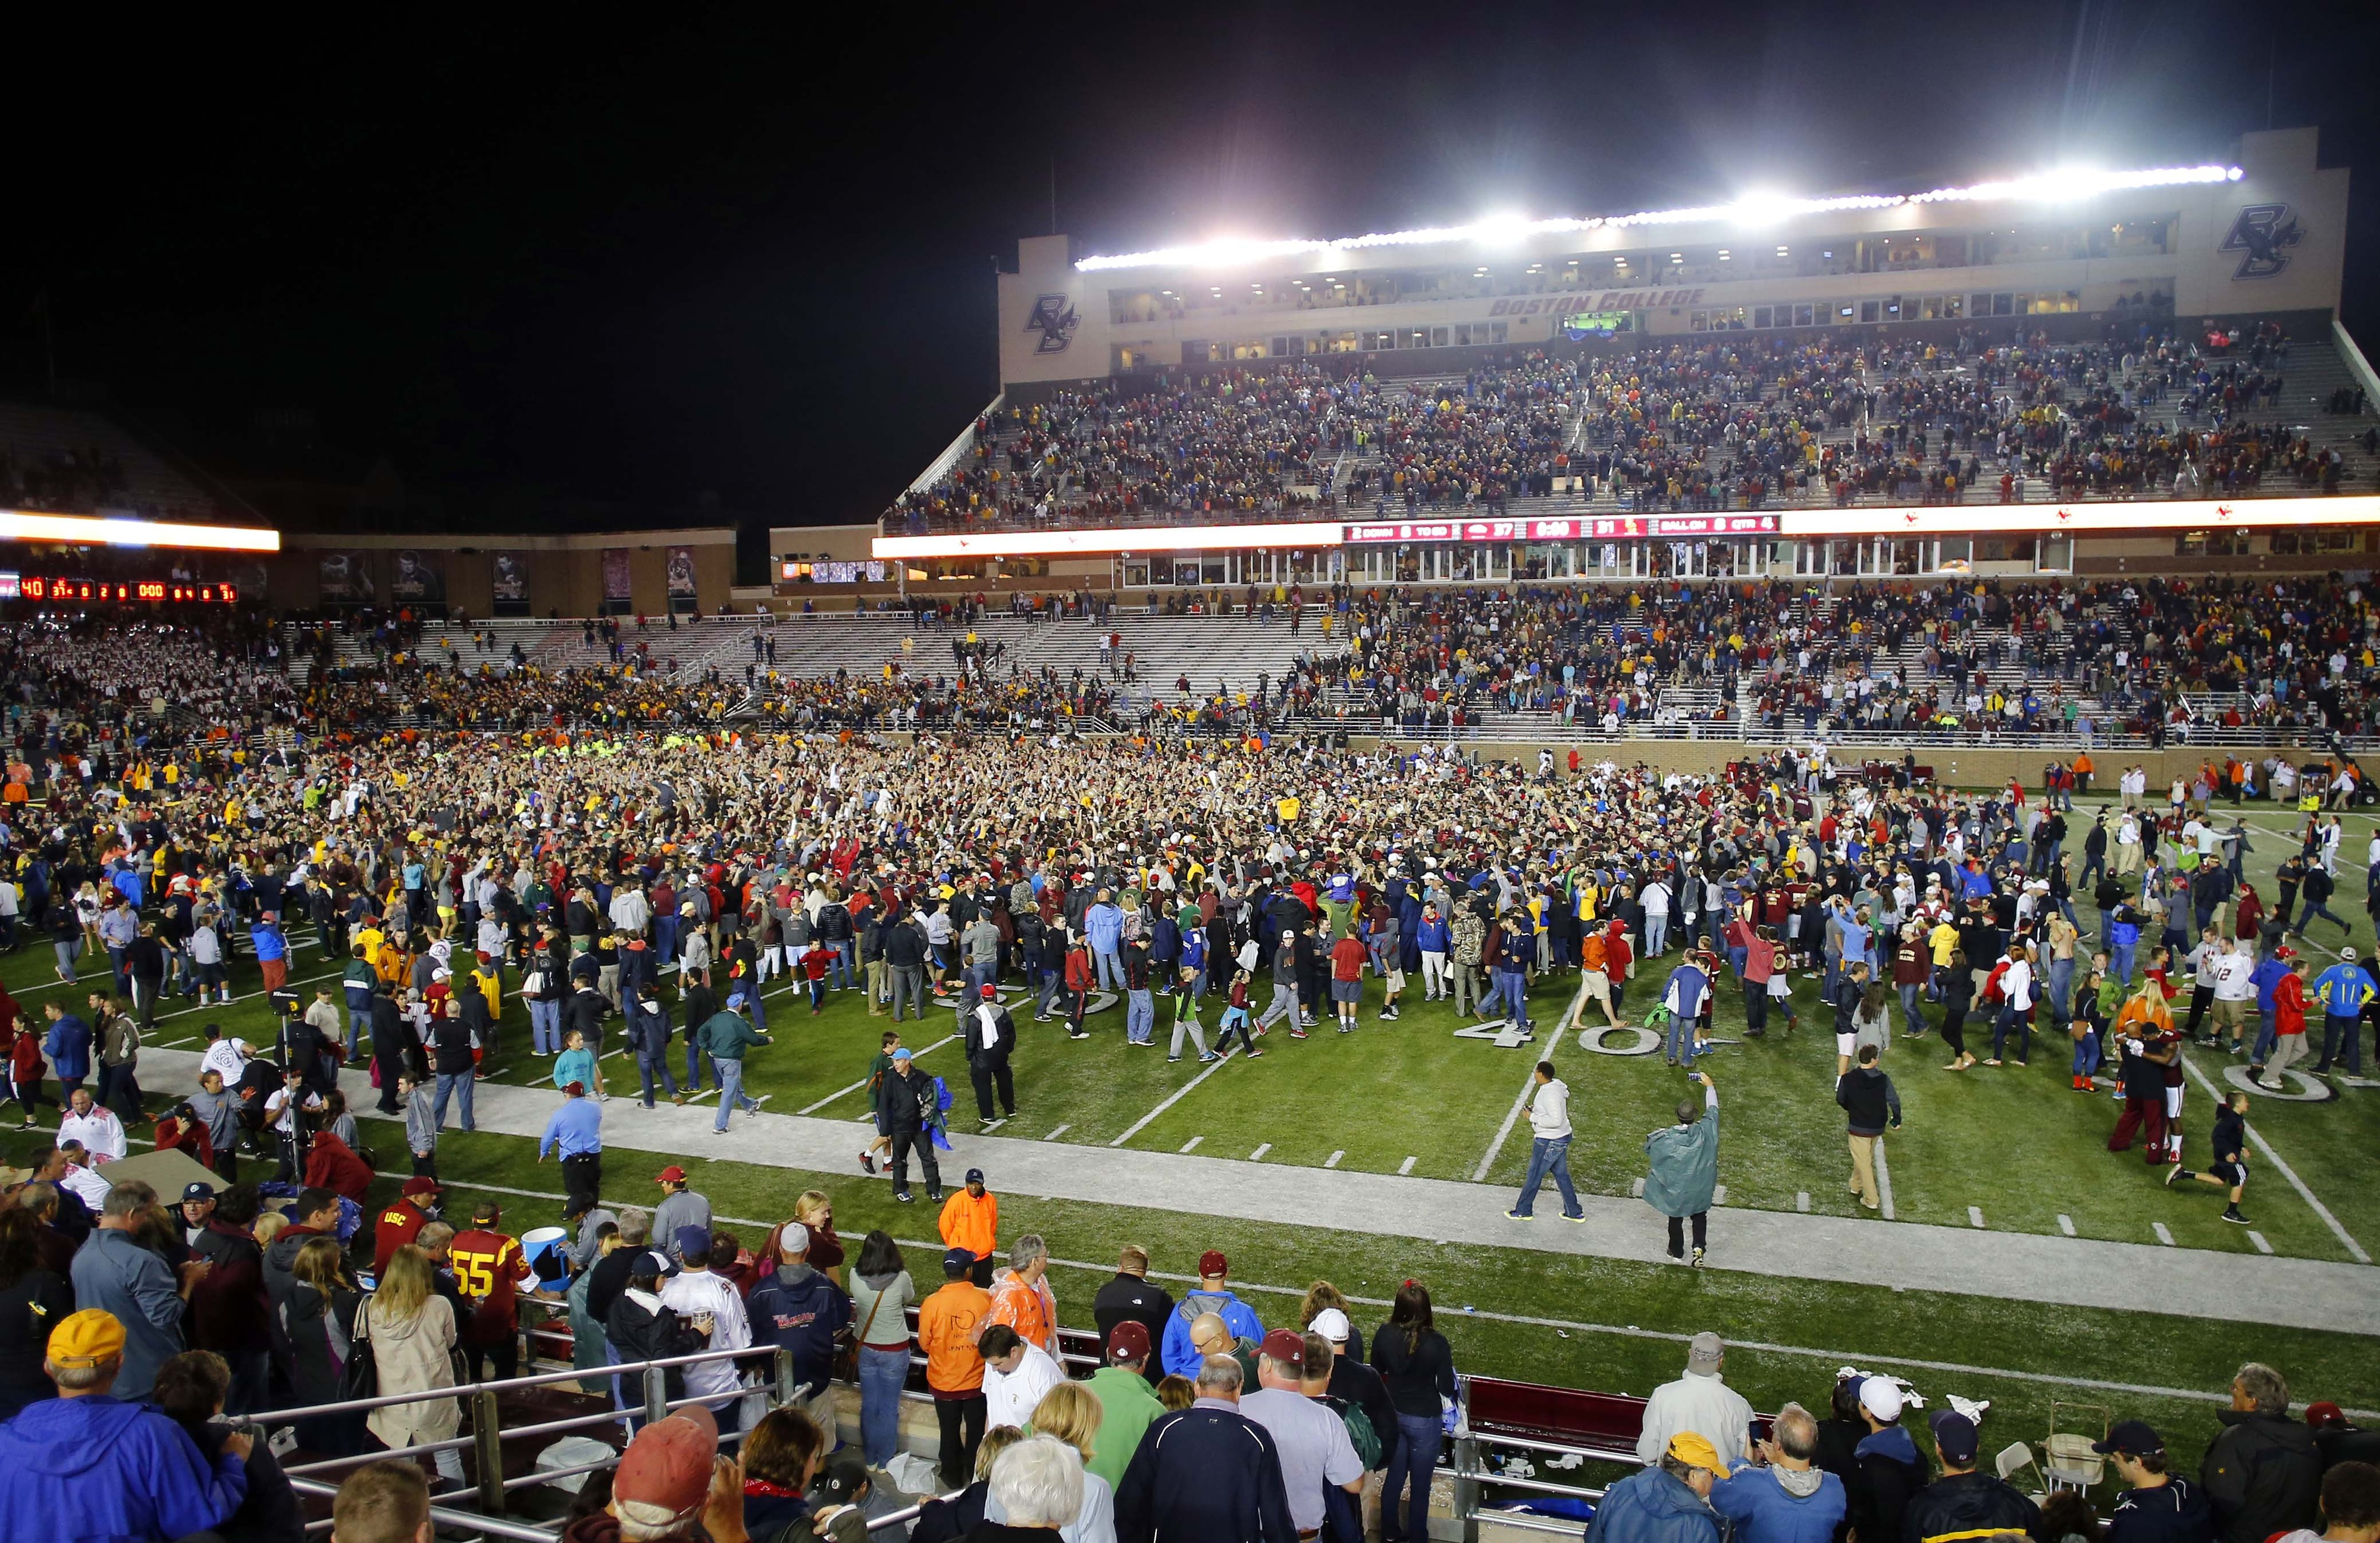 USC Fell To Boston College On Saturday, Resulting In This Scene Of Chaos After The Game.